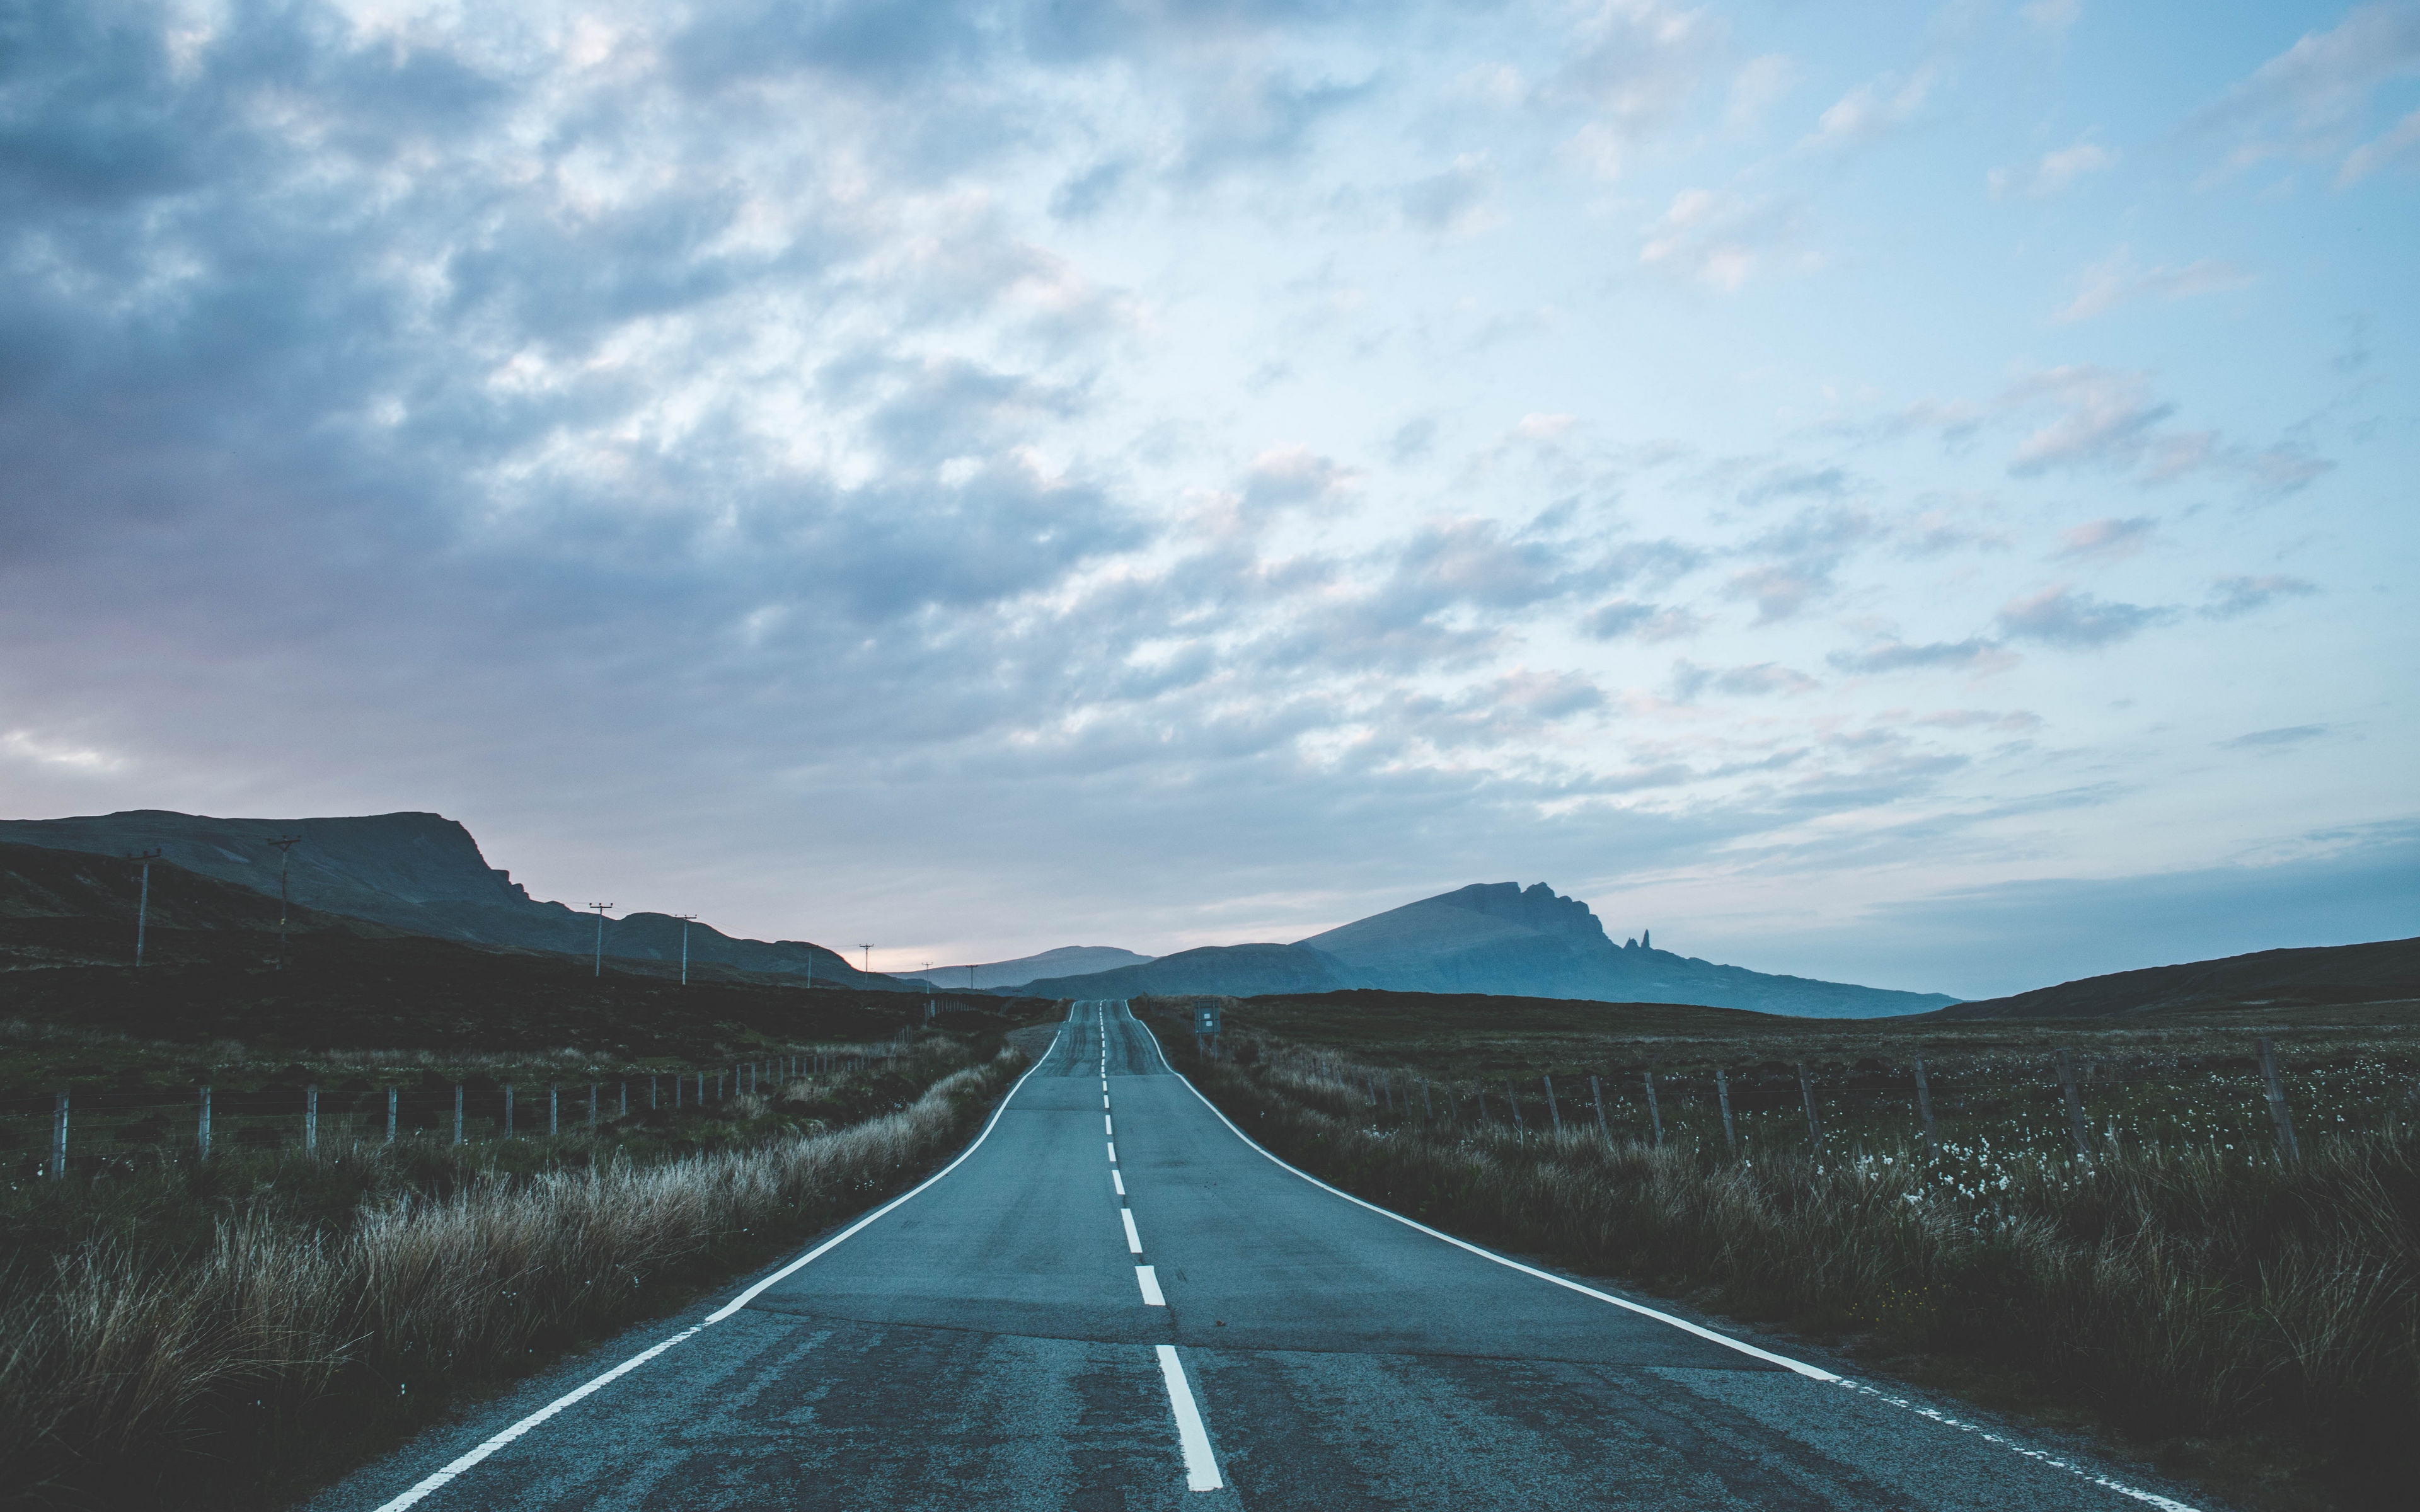 Download wallpaper 3840x2400 road marking mountains portree 3840x2400